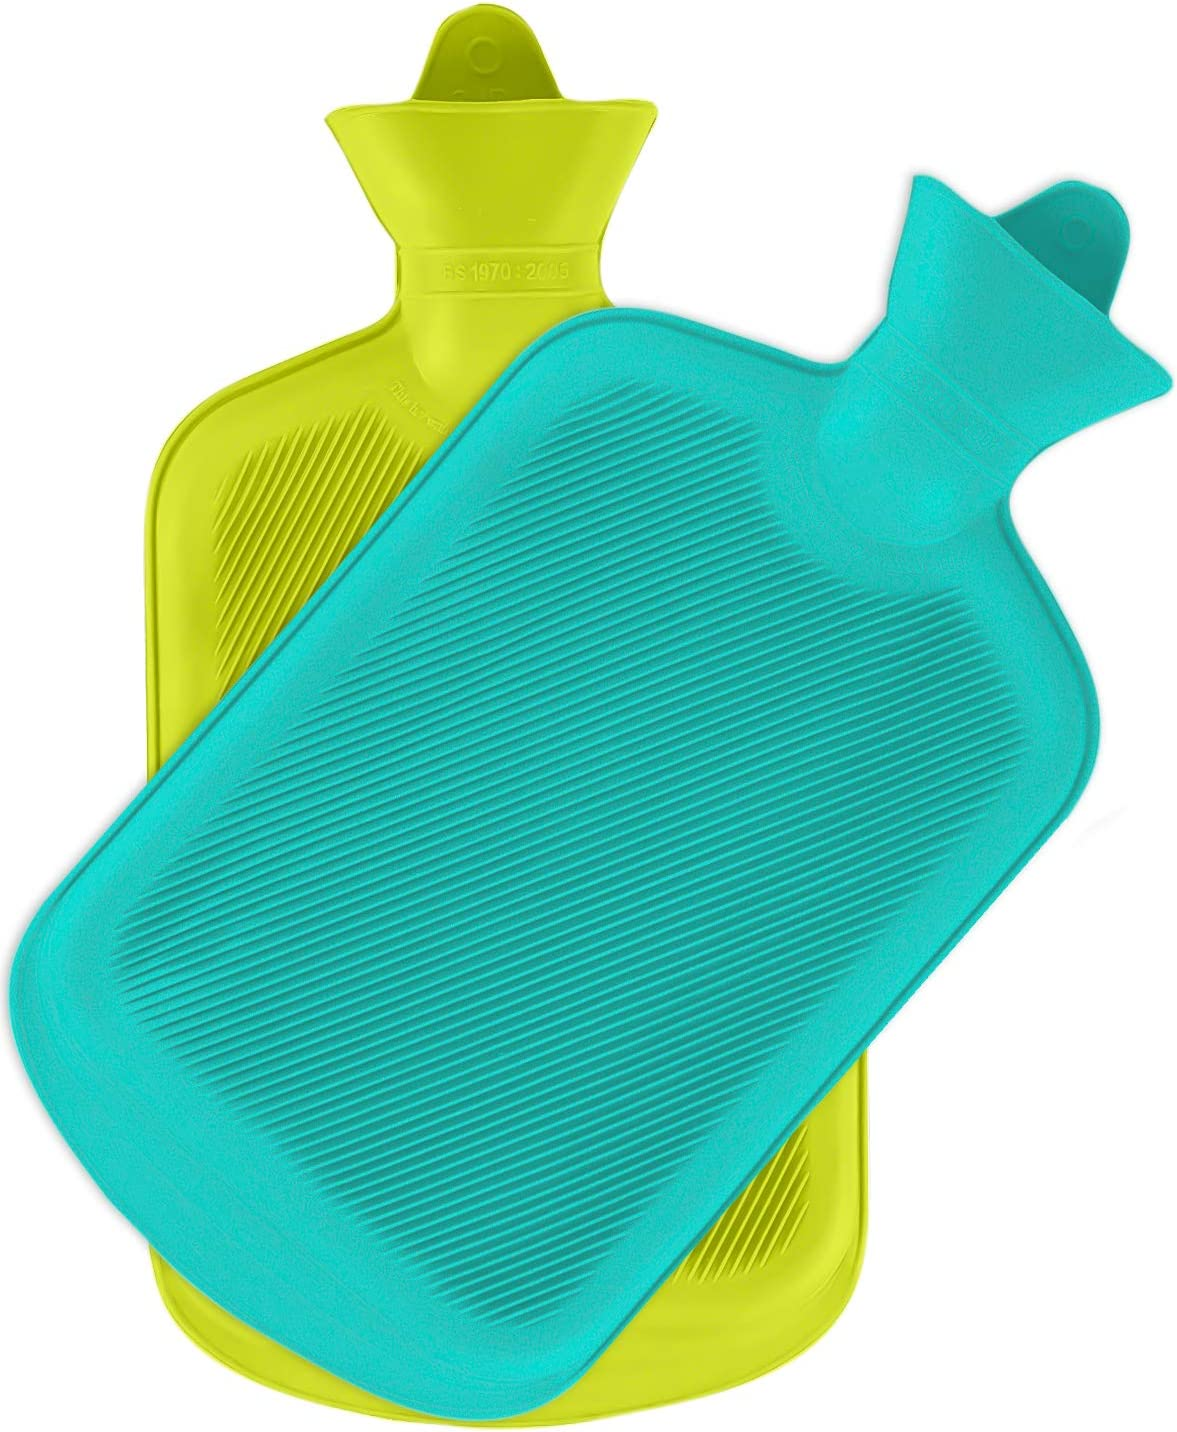 SteadMax Hot Water Bottle, Natural Rubber -BPA Free- Durable Hot Water Bag for Hot Compress and Heat Therapy, Green and Turquoise Color (2 Pack)